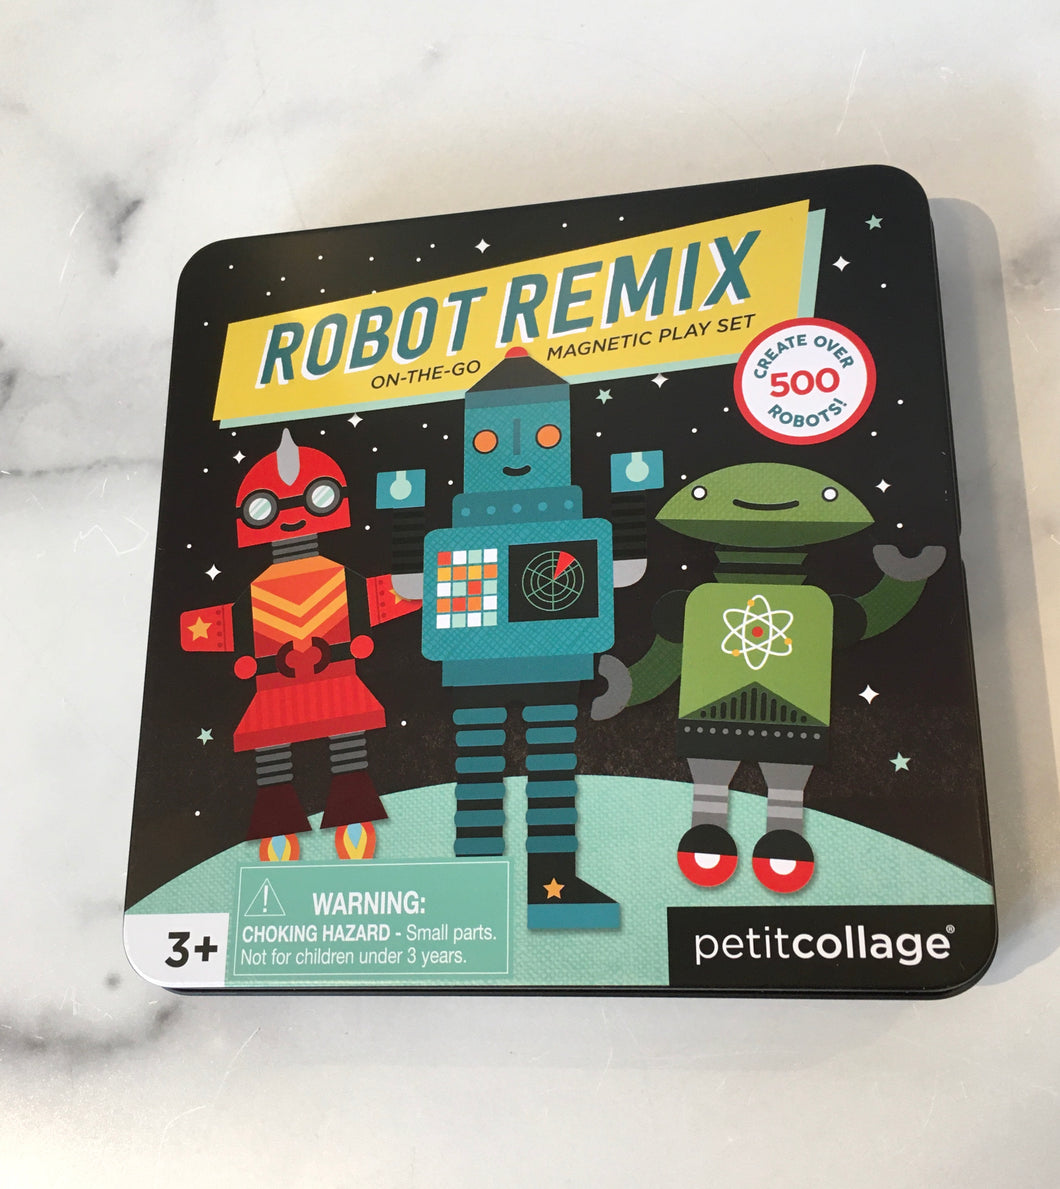 Robot Remix On-The-Go Magnetic Play Set